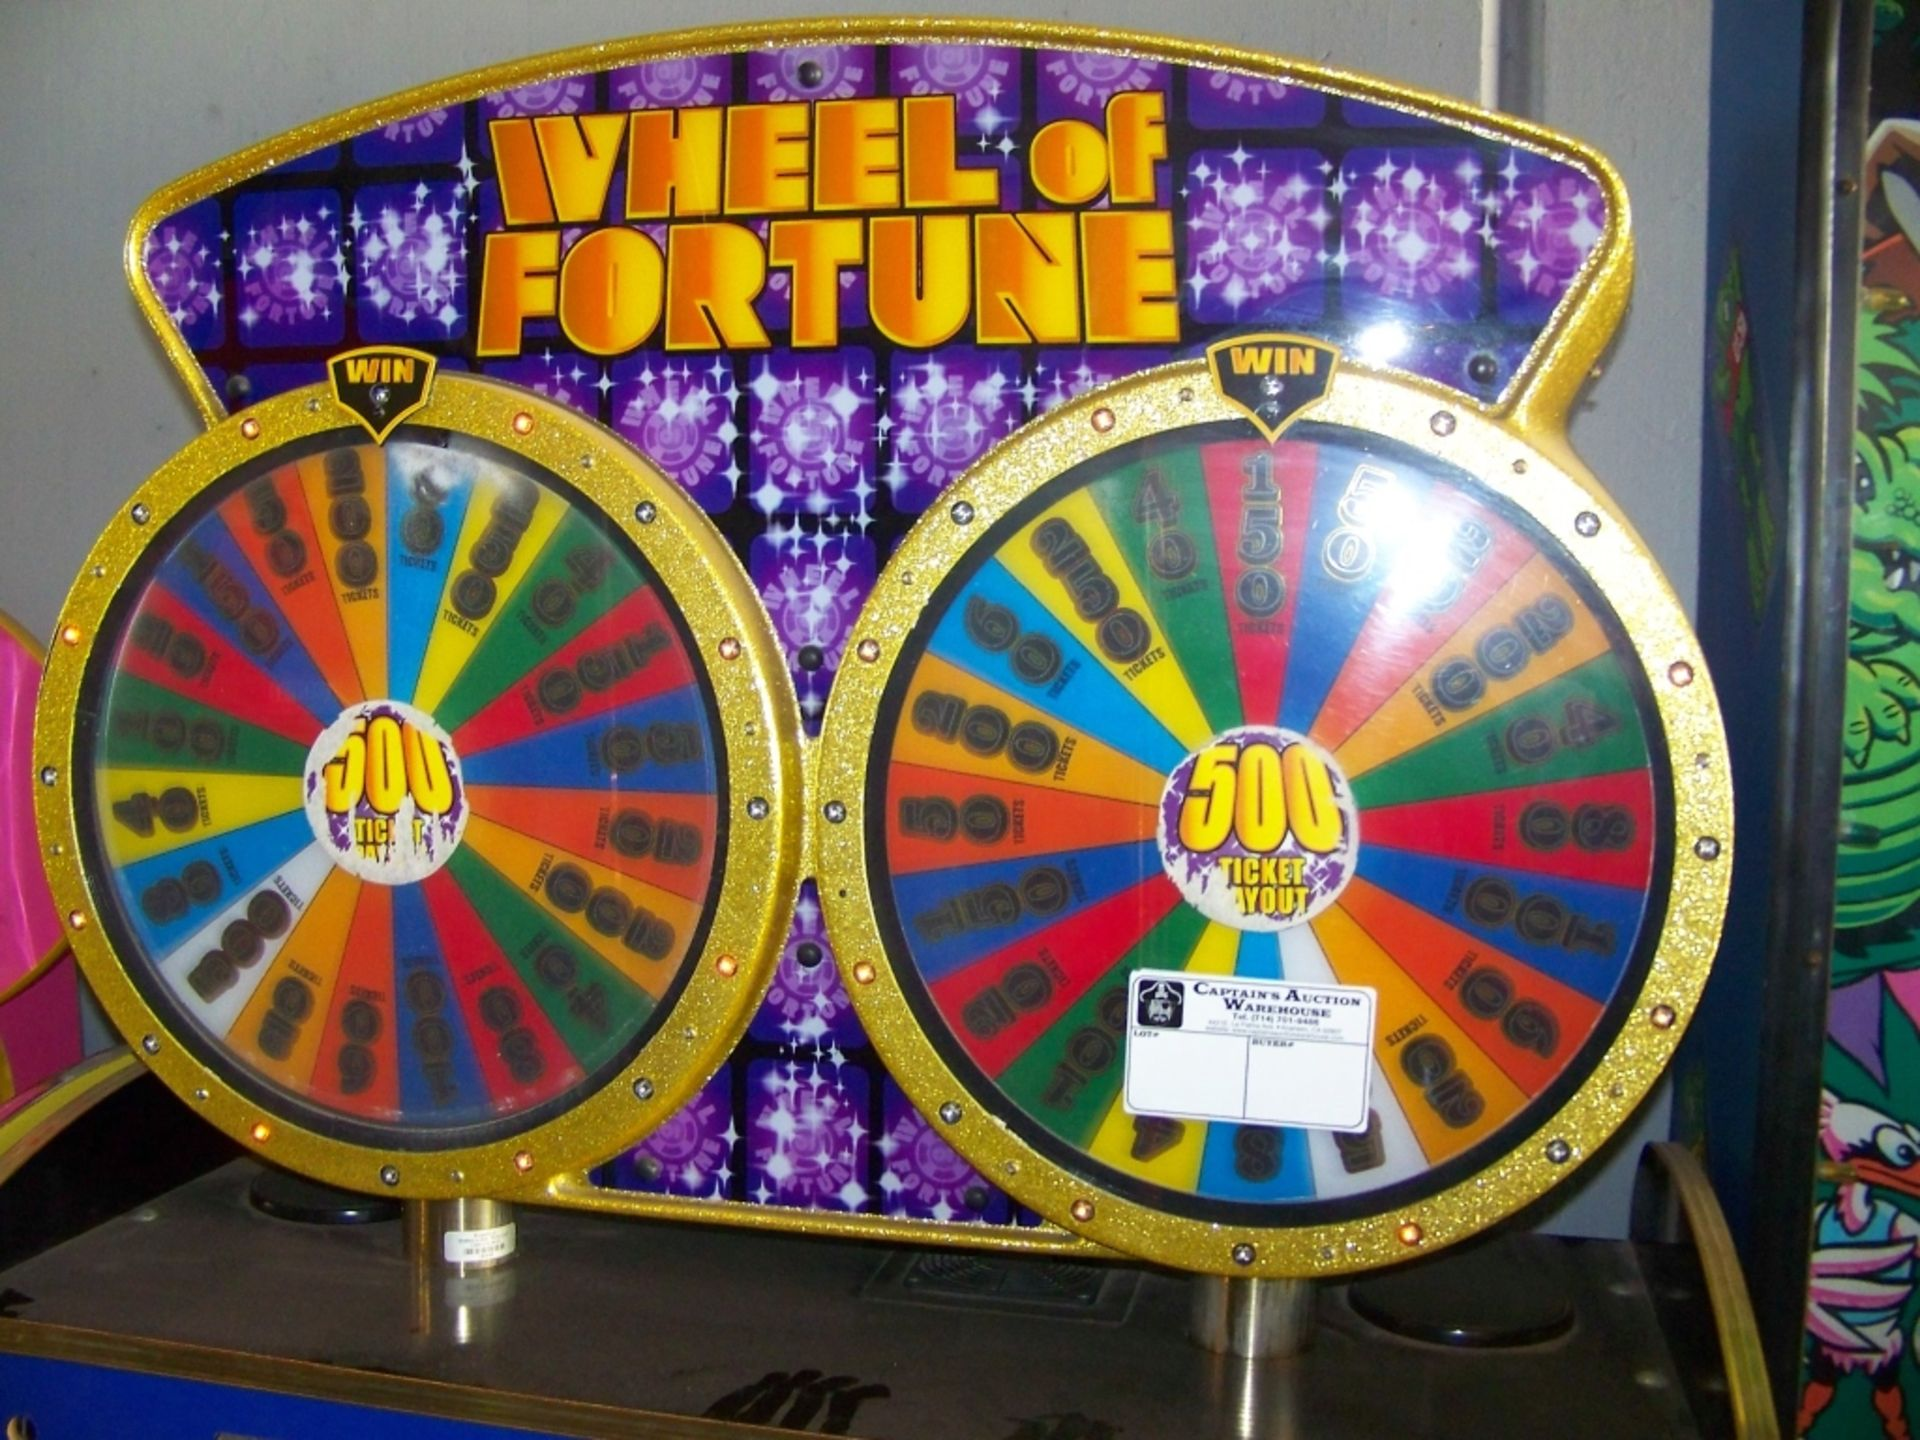 WHEEL OF FORTUNE DUAL PUSHER TICKET REDEMPTION ICE - Image 4 of 4